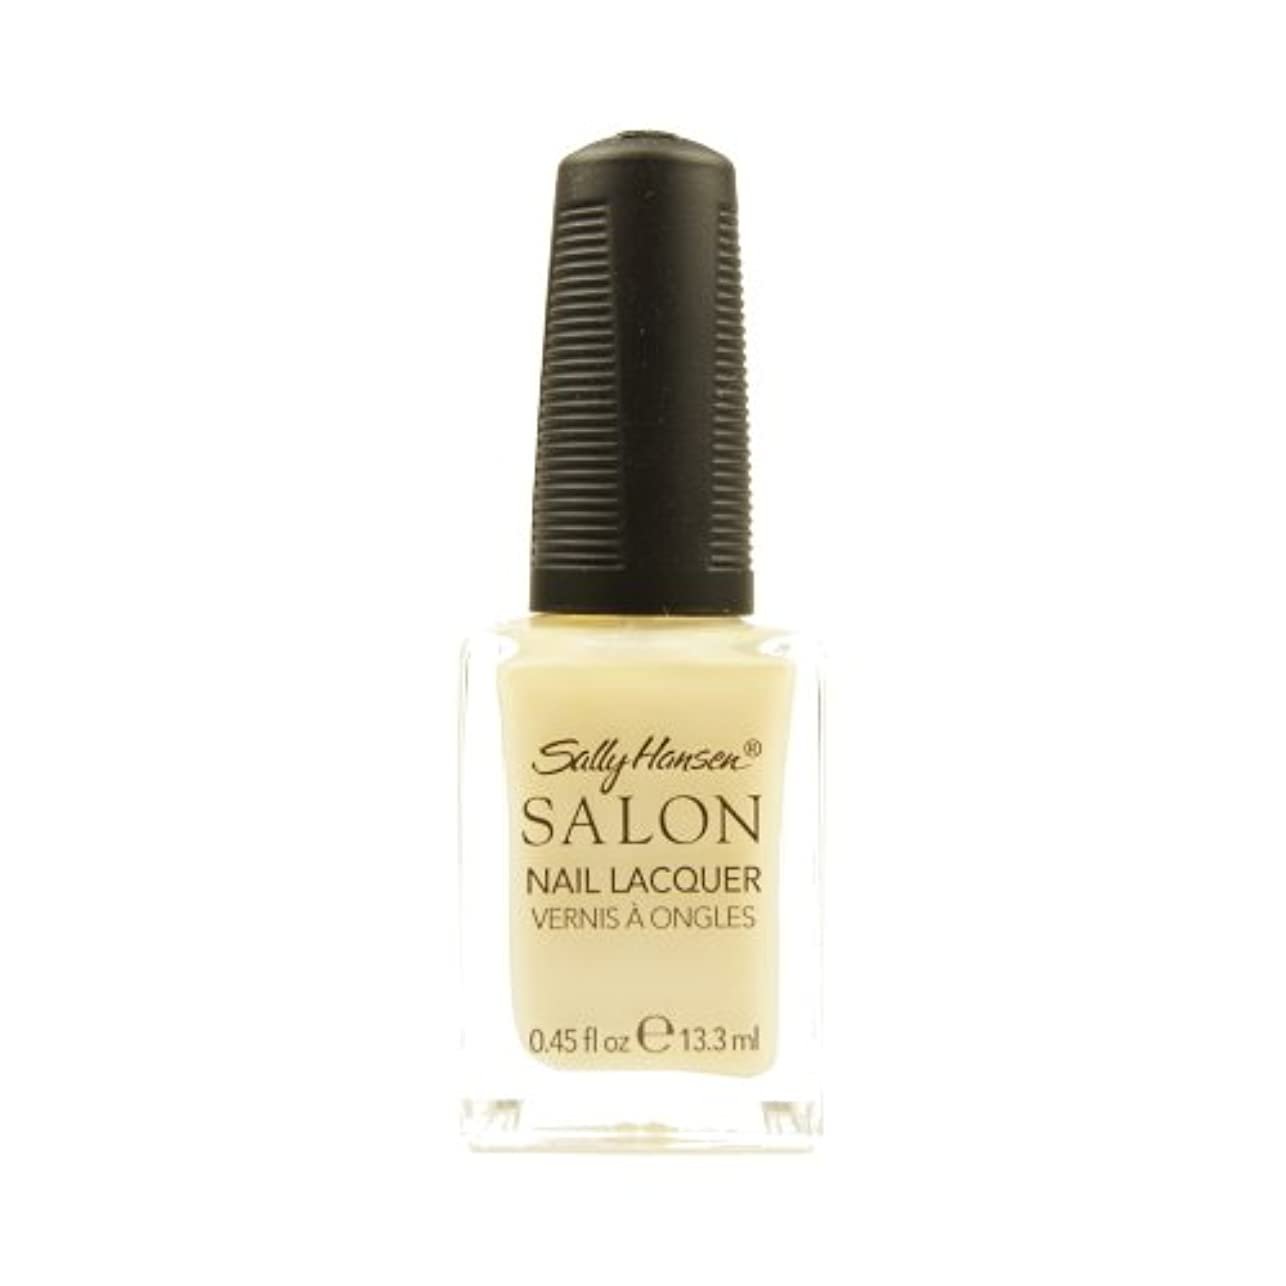 ピアノを弾く貸し手動脈(6 Pack) SALLY HANSEN Salon Nail Lacquer 4134 - Sheer Pressure (並行輸入品)